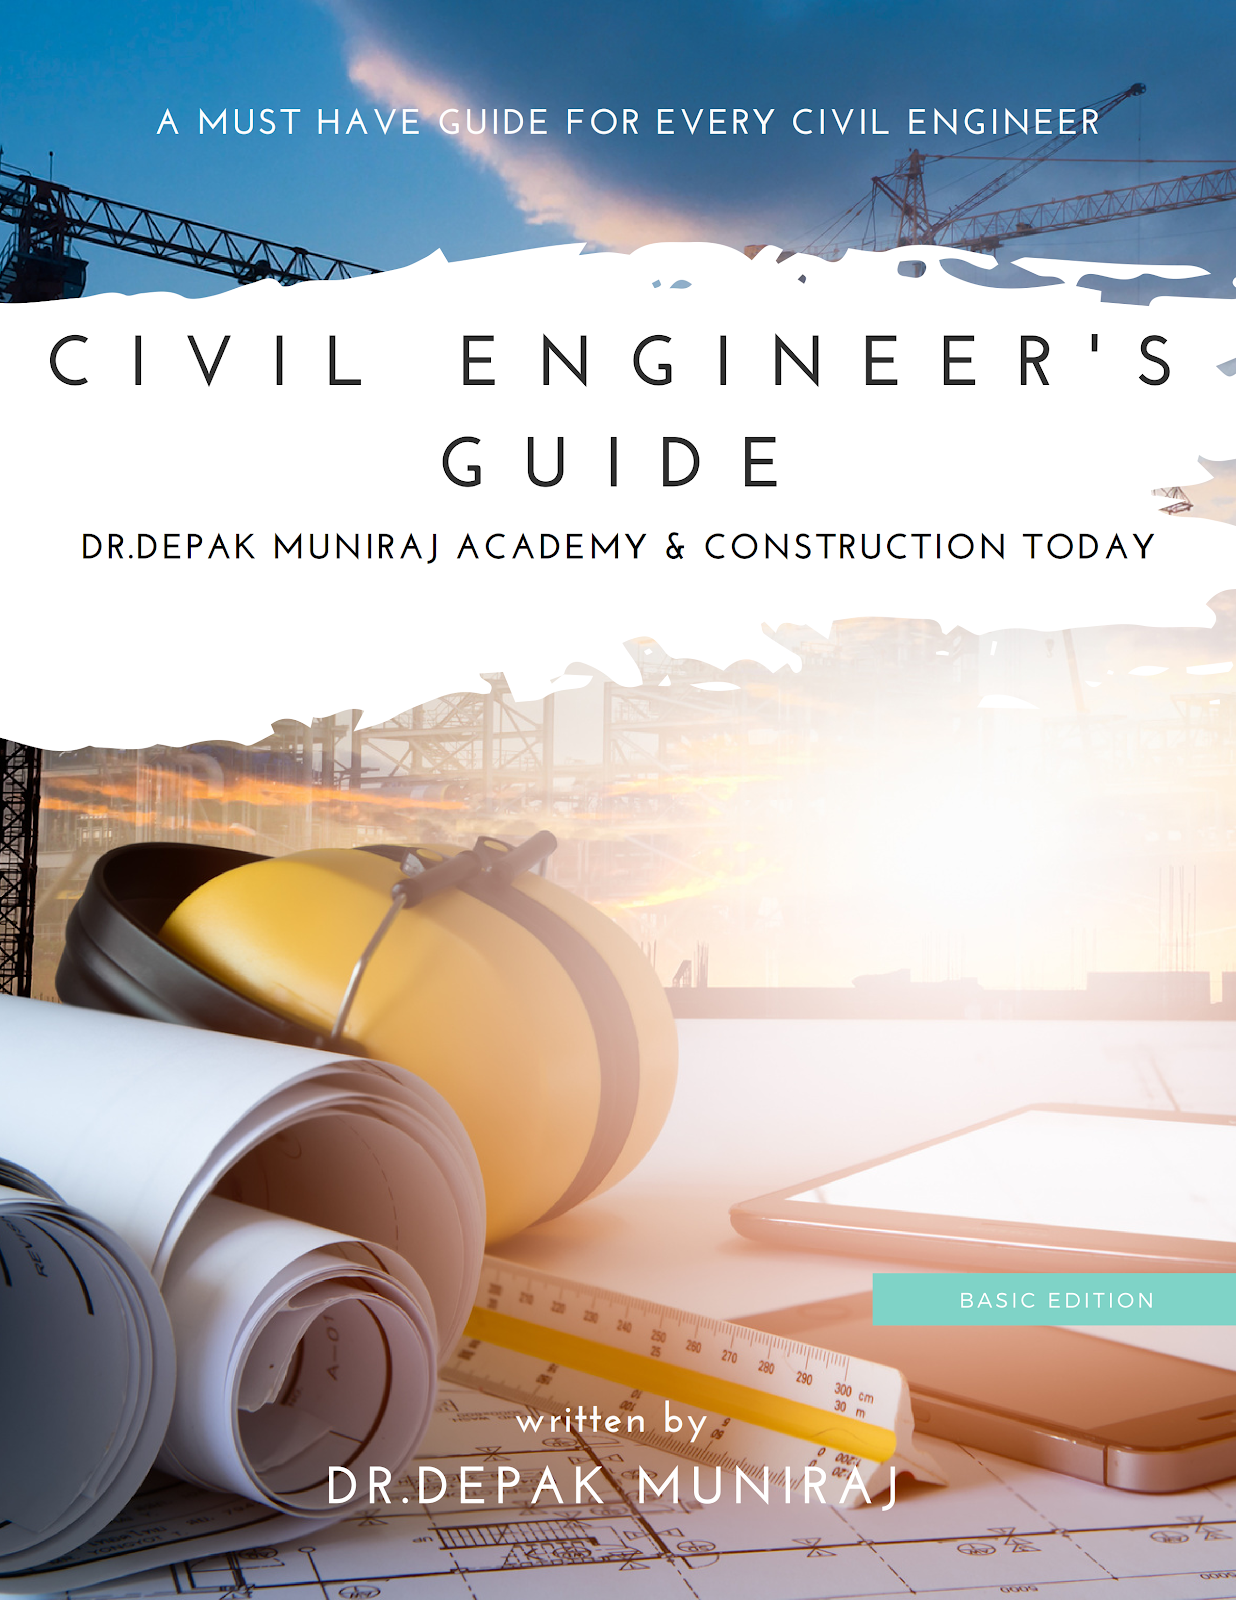 Subscribe now and get the civil engineer's guide as compliment!